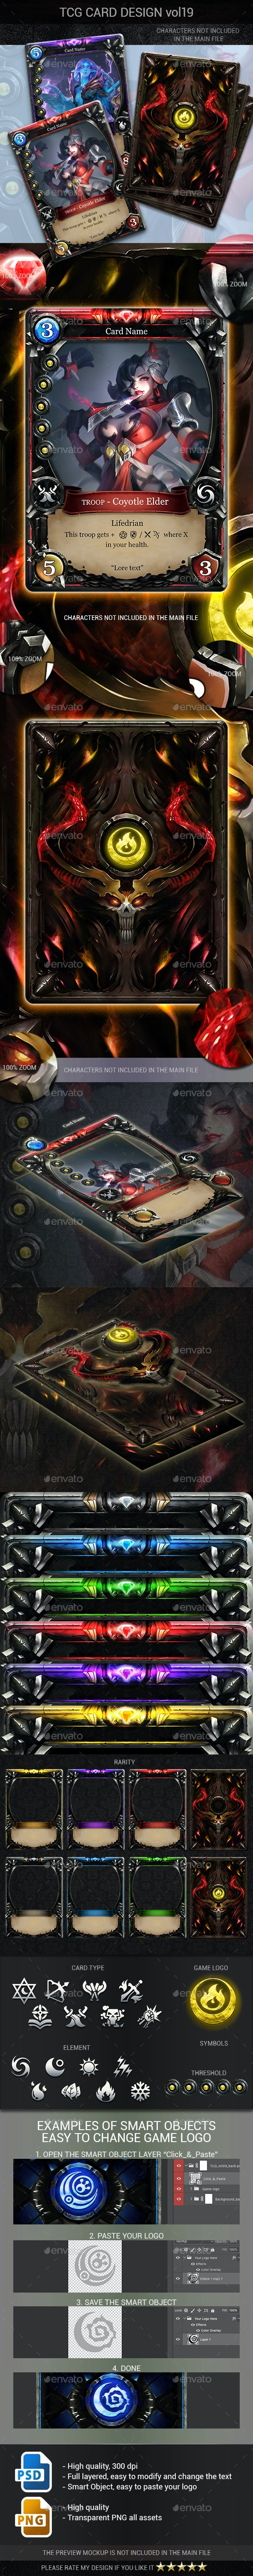 TCG Card Design Vol 19 - Miscellaneous Game Assets